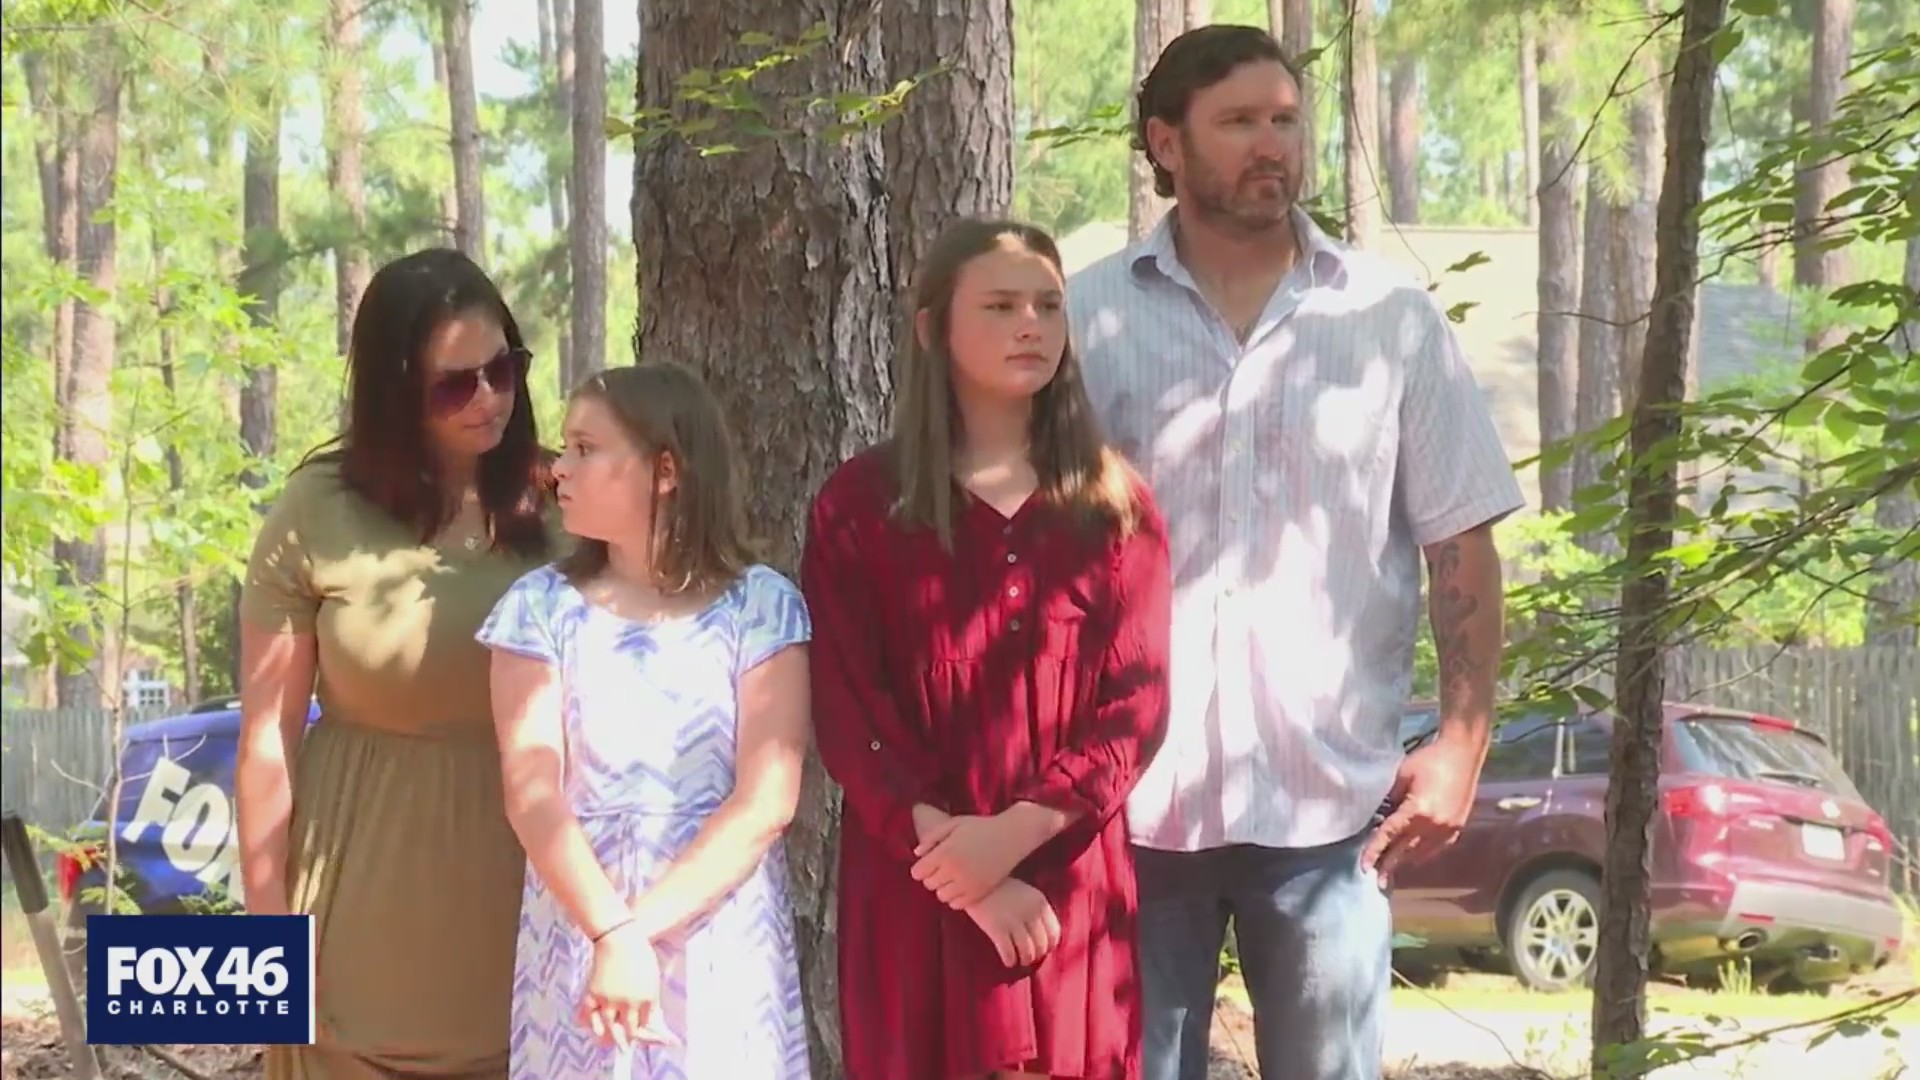 NC Green Beret with terminal cancer who fought for law change gifted new home